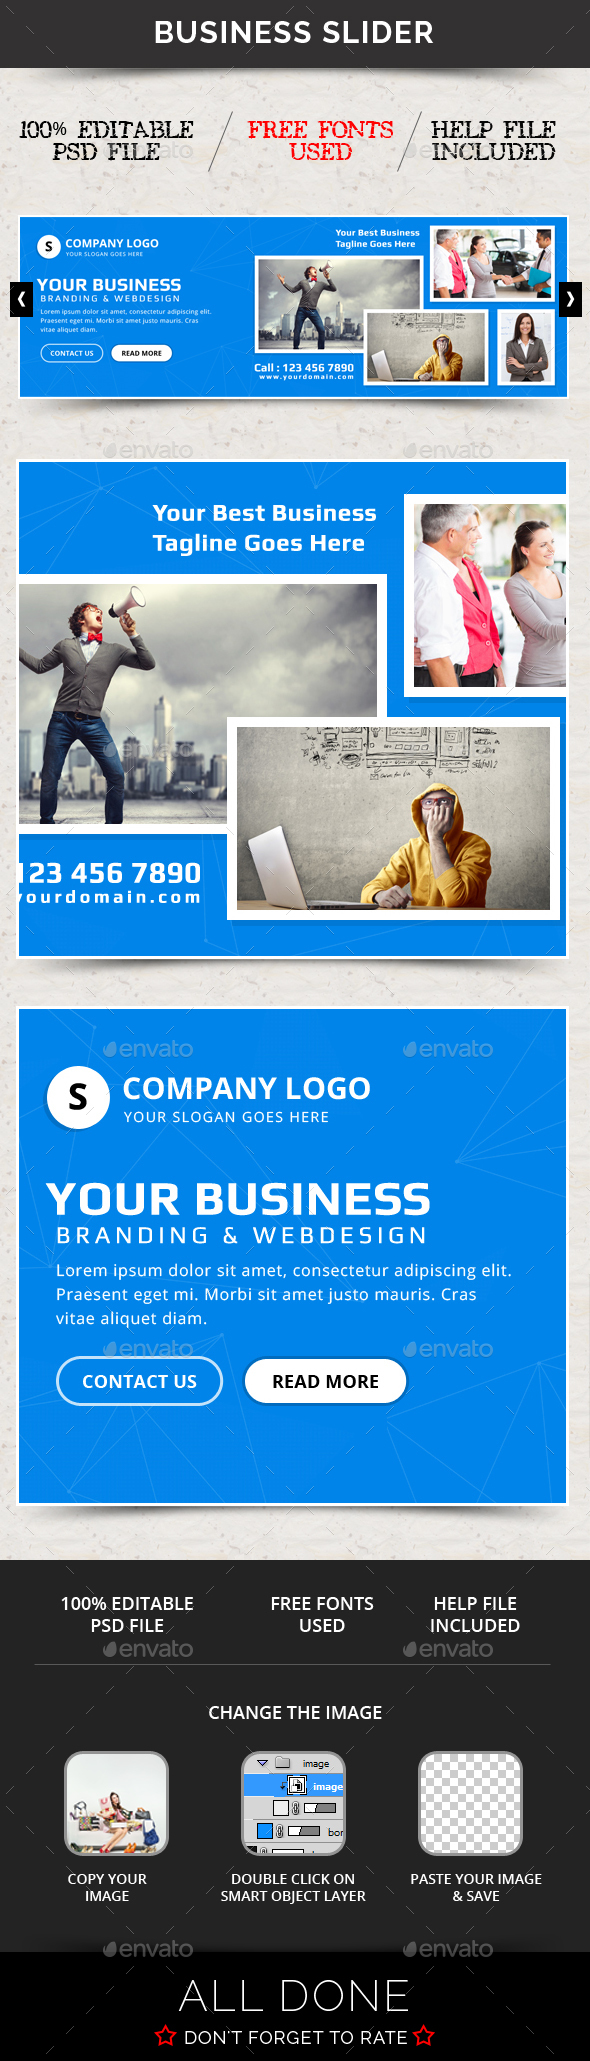 Business Slider V56 - Sliders & Features Web Elements